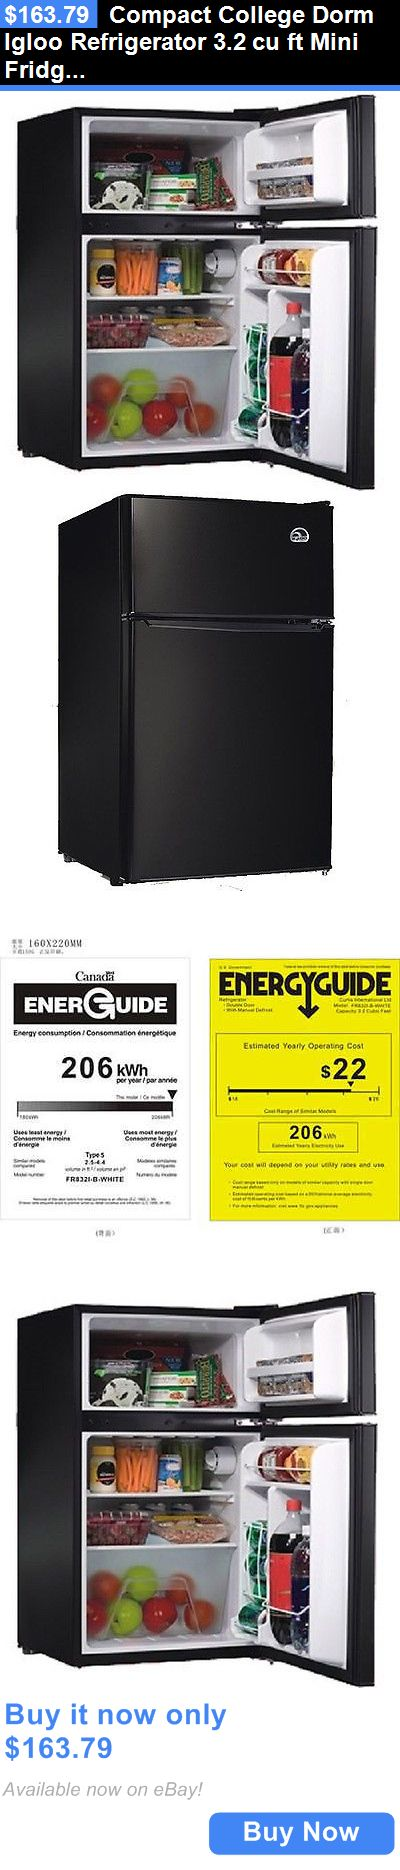 Are Emerson mini refrigerators made of stainless steel?